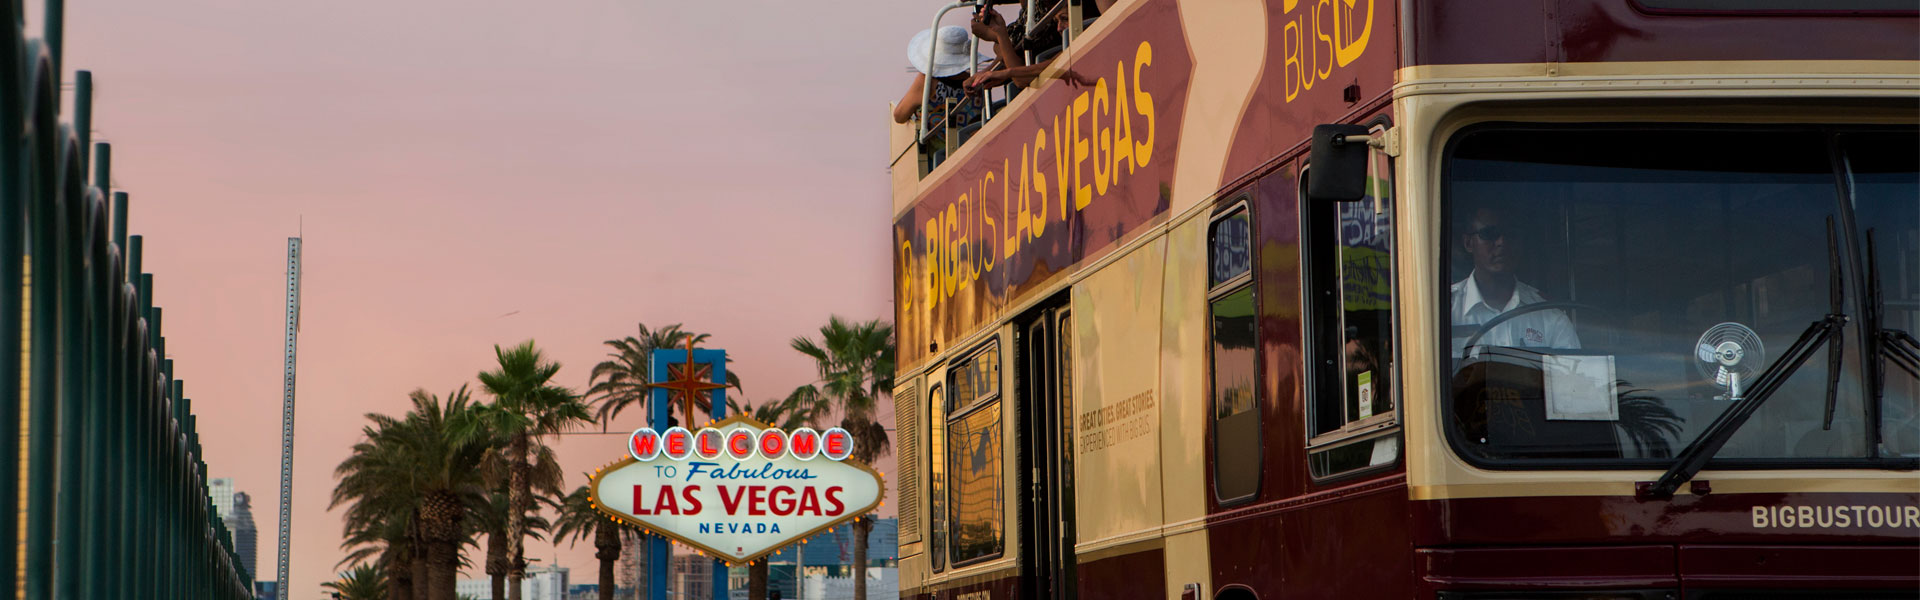 Big Bus Tours Las Vegas Bus with Welcome To Fabulous Las Vegas Sign in background